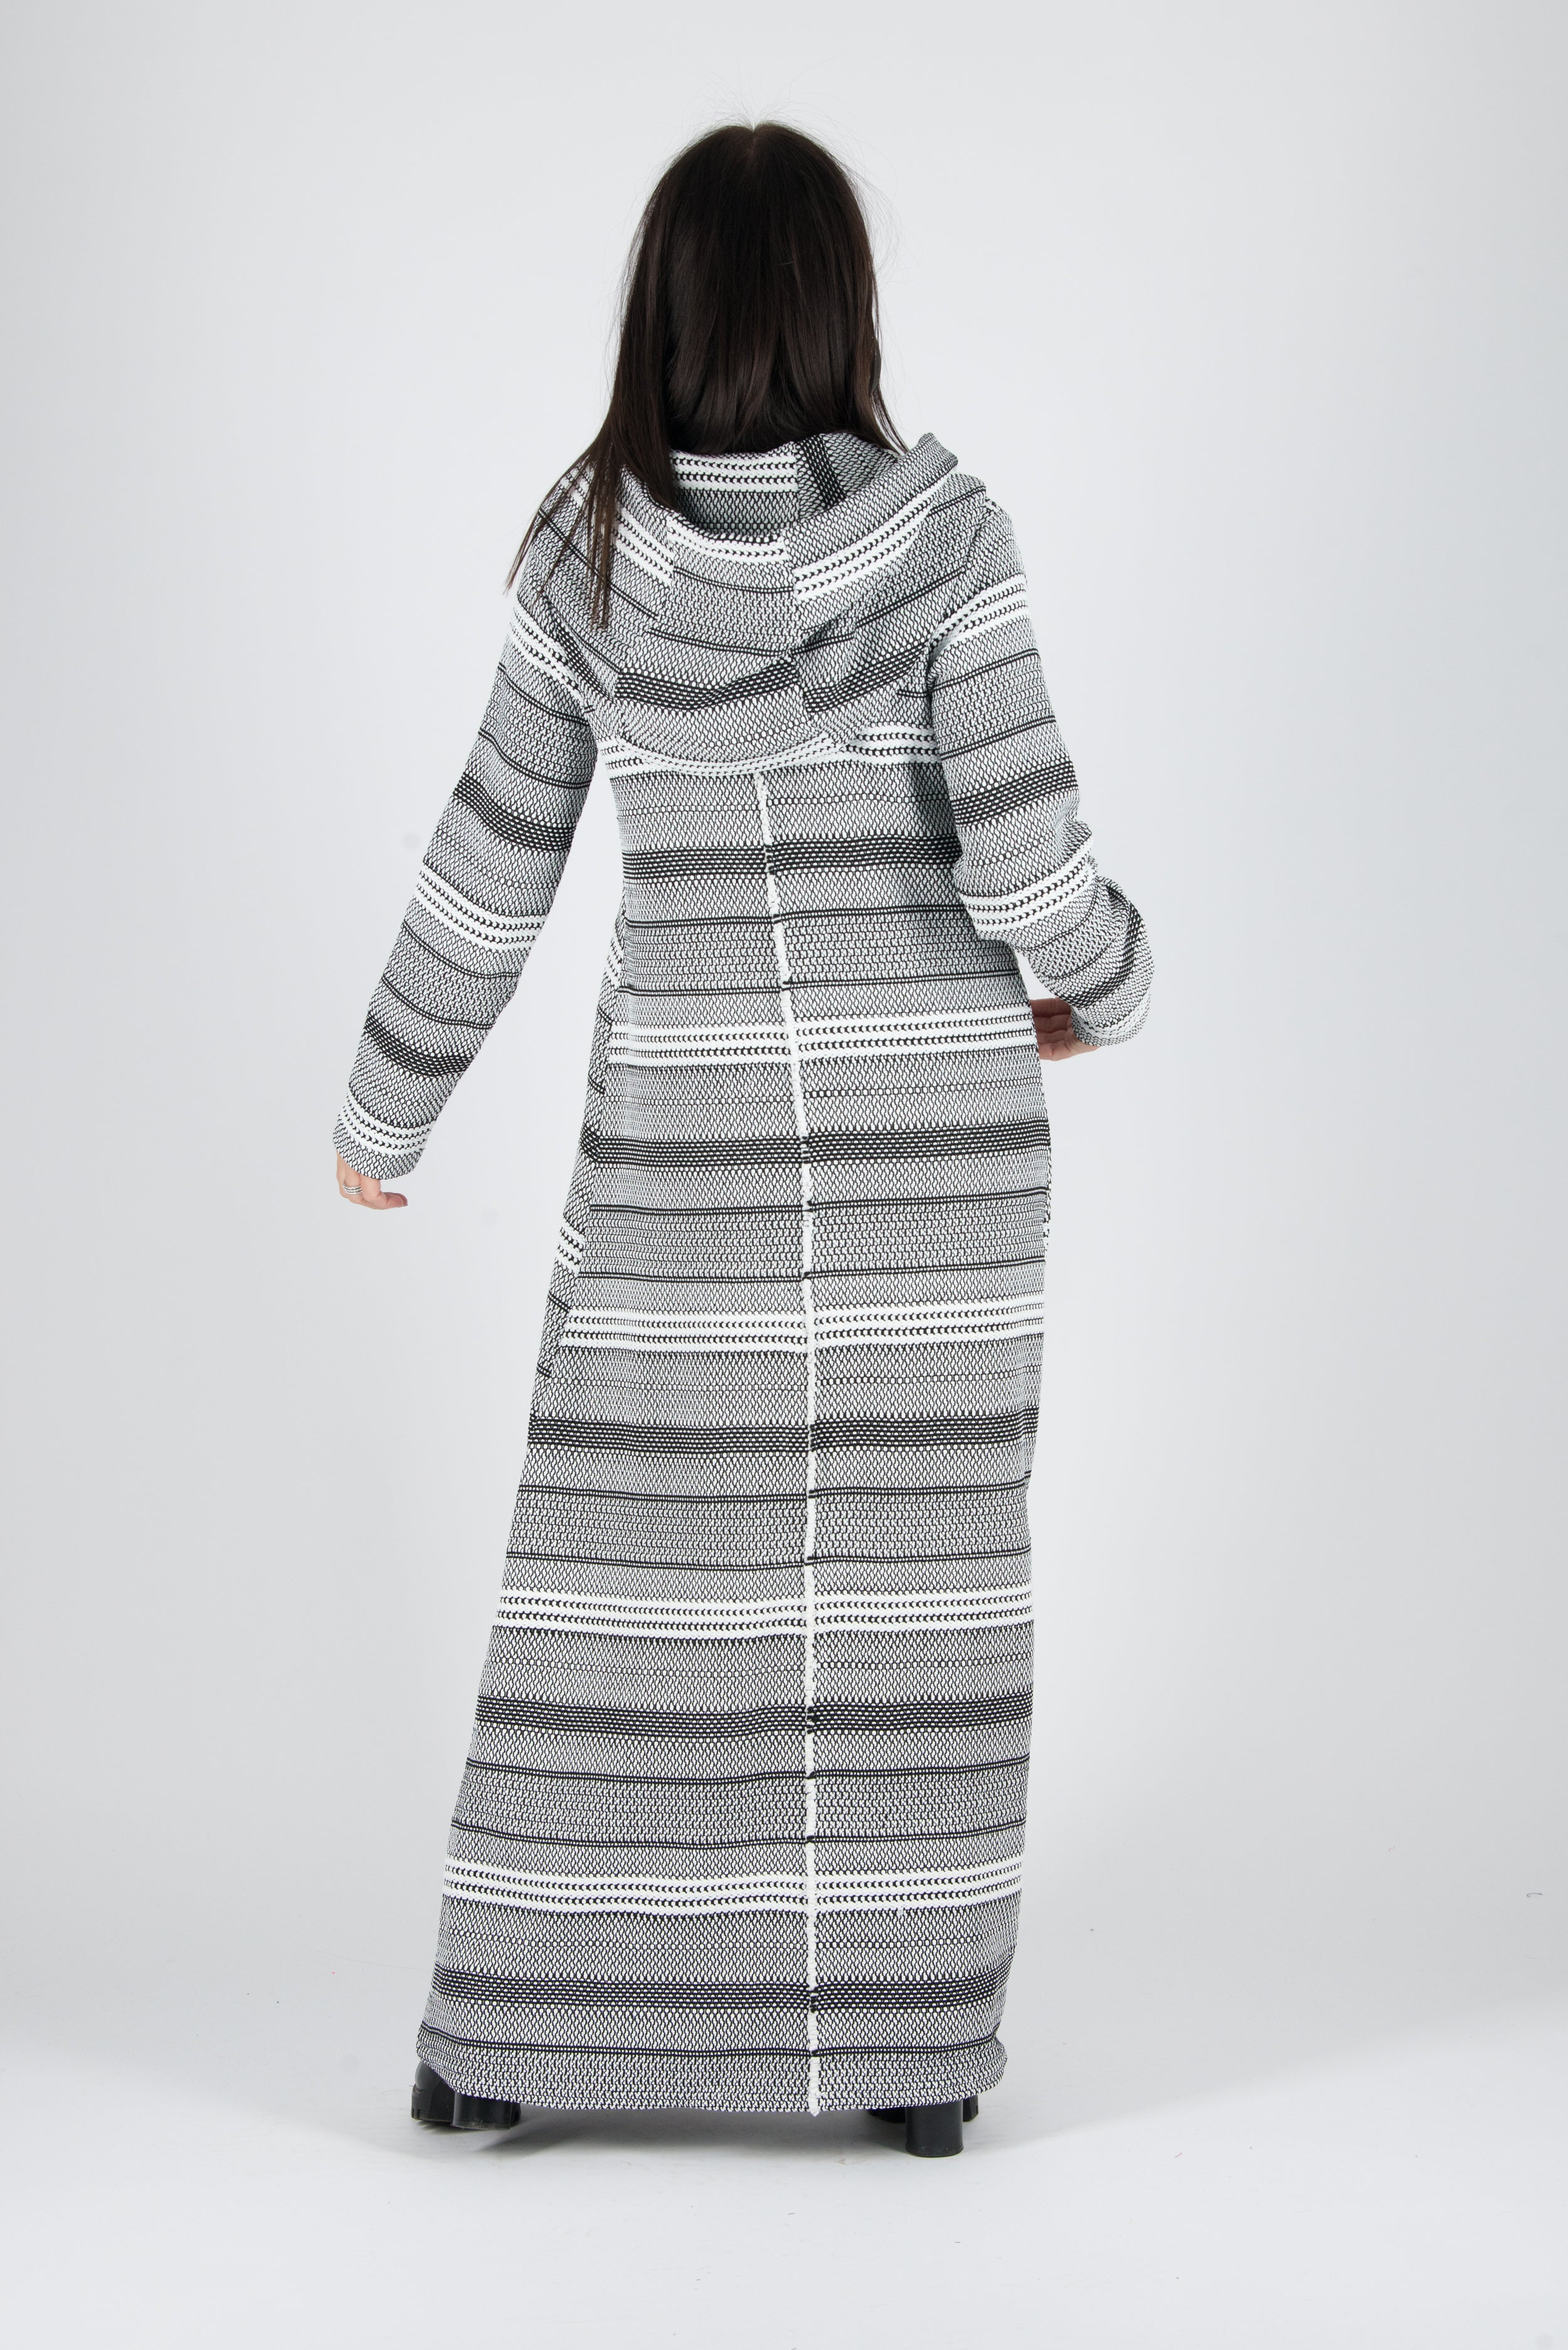 Spring Long Hooded Plus size Black and White dress, New Arrival